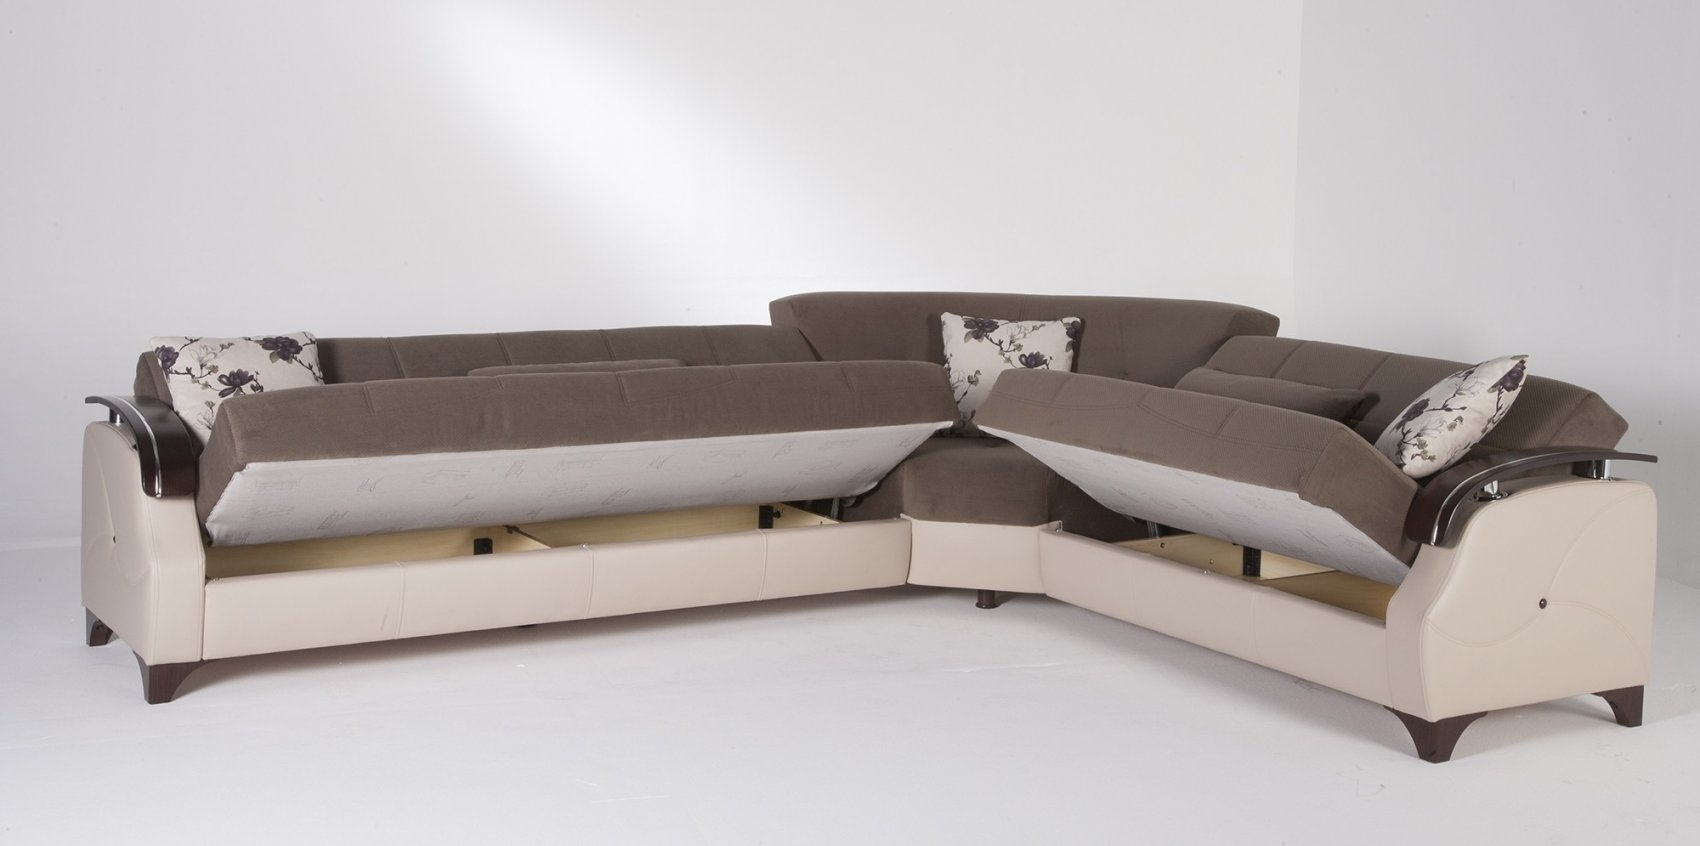 Sectional Sofa Bed - S3Net - Sectional Sofas Sale : S3Net With inside Sectional Sofas With Storage (Image 5 of 10)